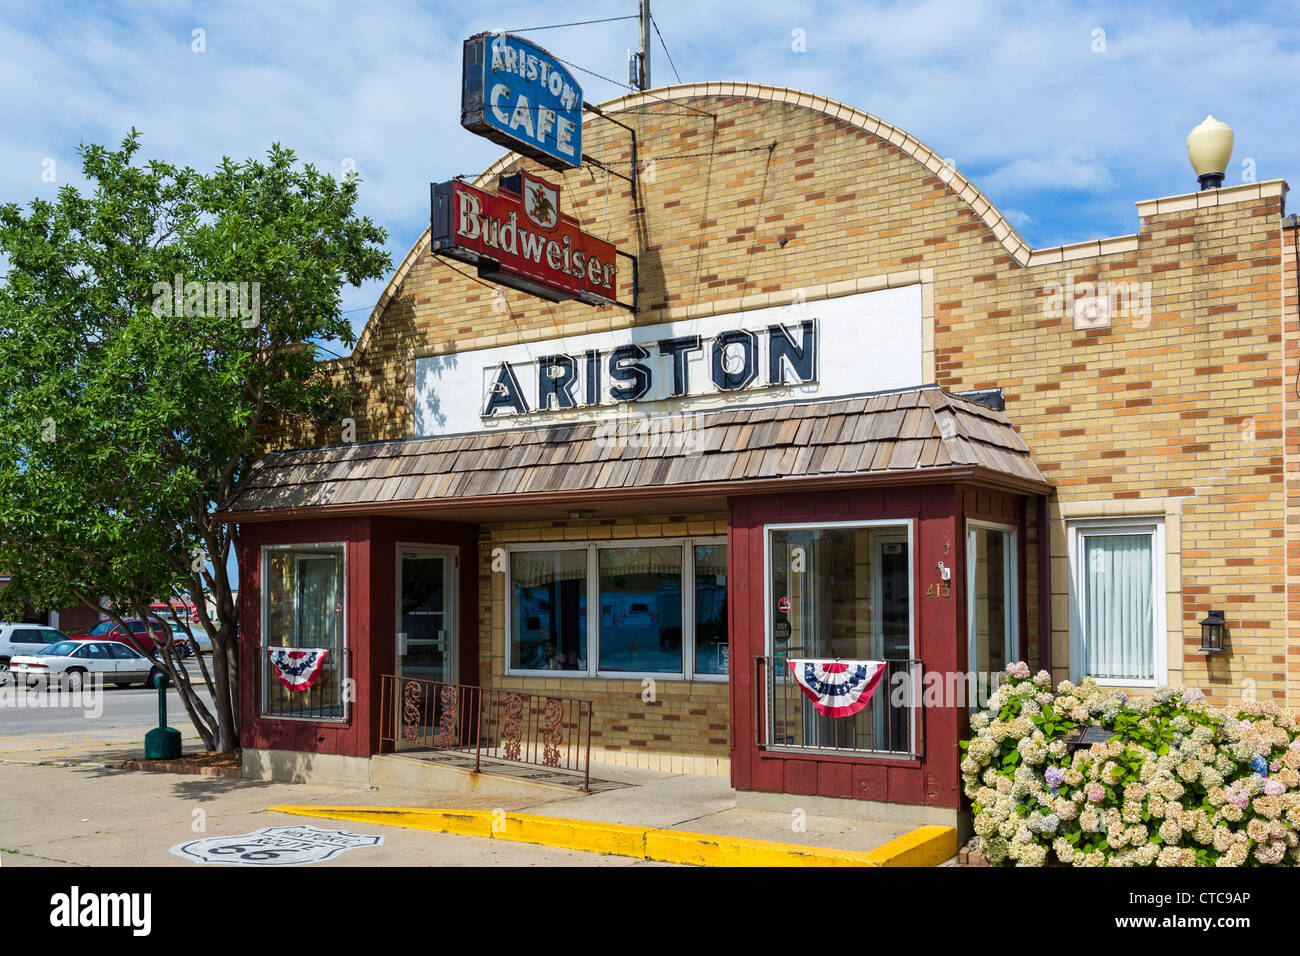 The historic Ariston Cafe on old US Route 66 in Litchfield, Illinois, USA - Stock Image